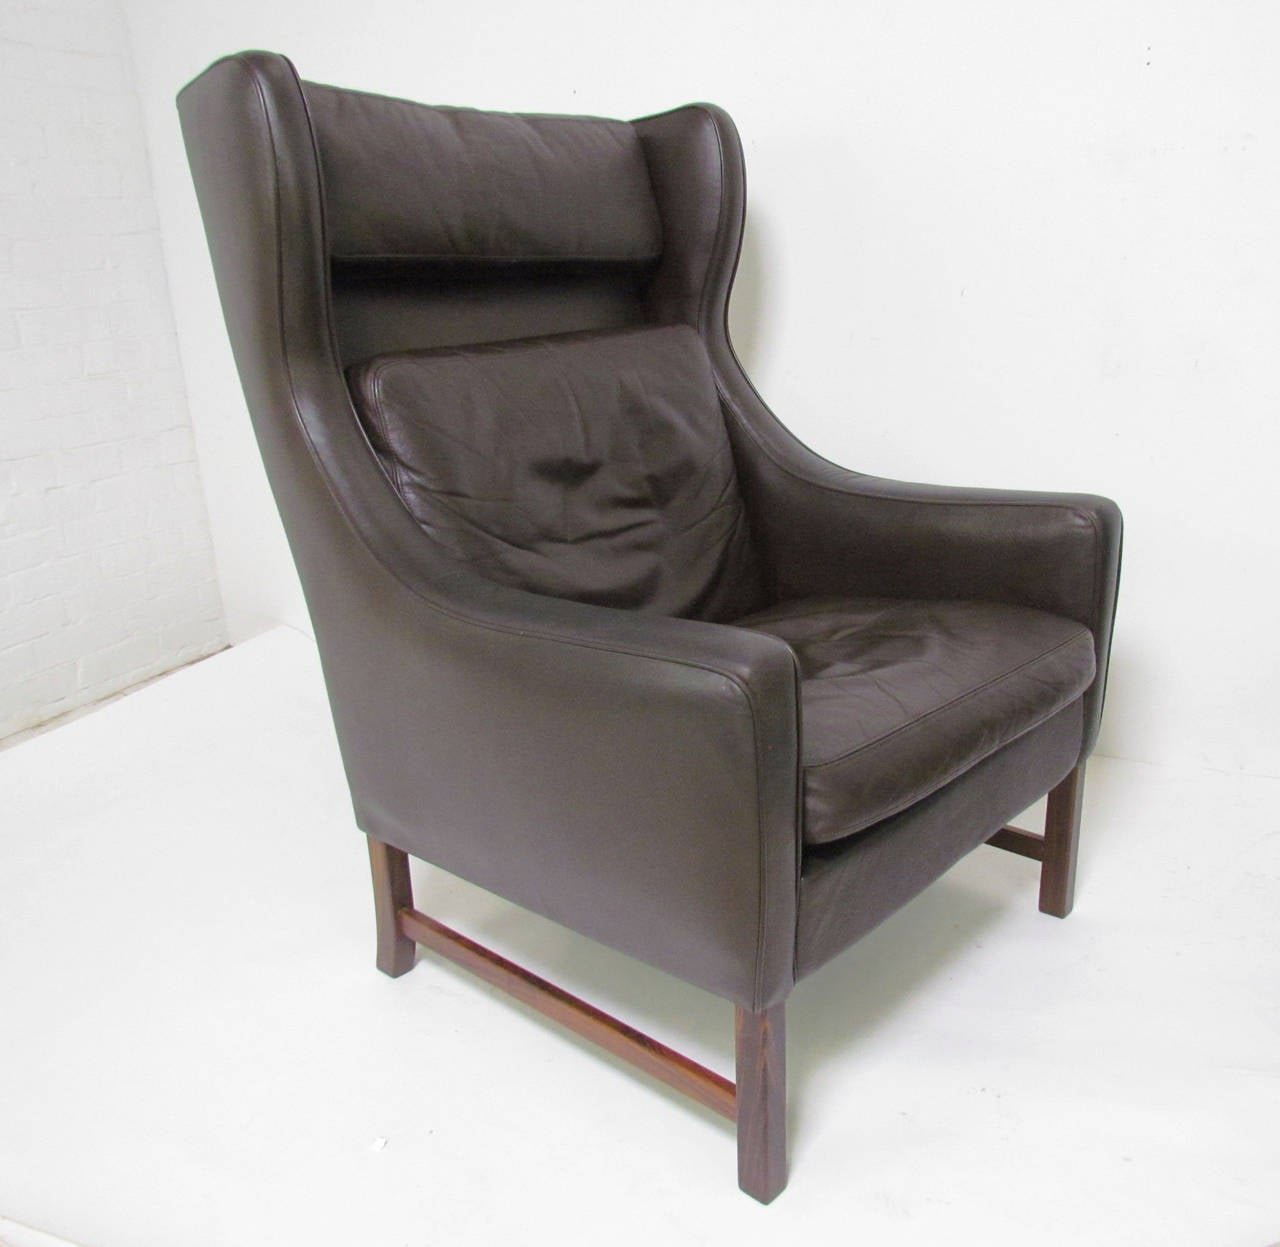 Danish modern wingback chair - Pair Of Danish Modern Wingback Leather Lounge Chairs By Fredrik Kayser For Vatne 2